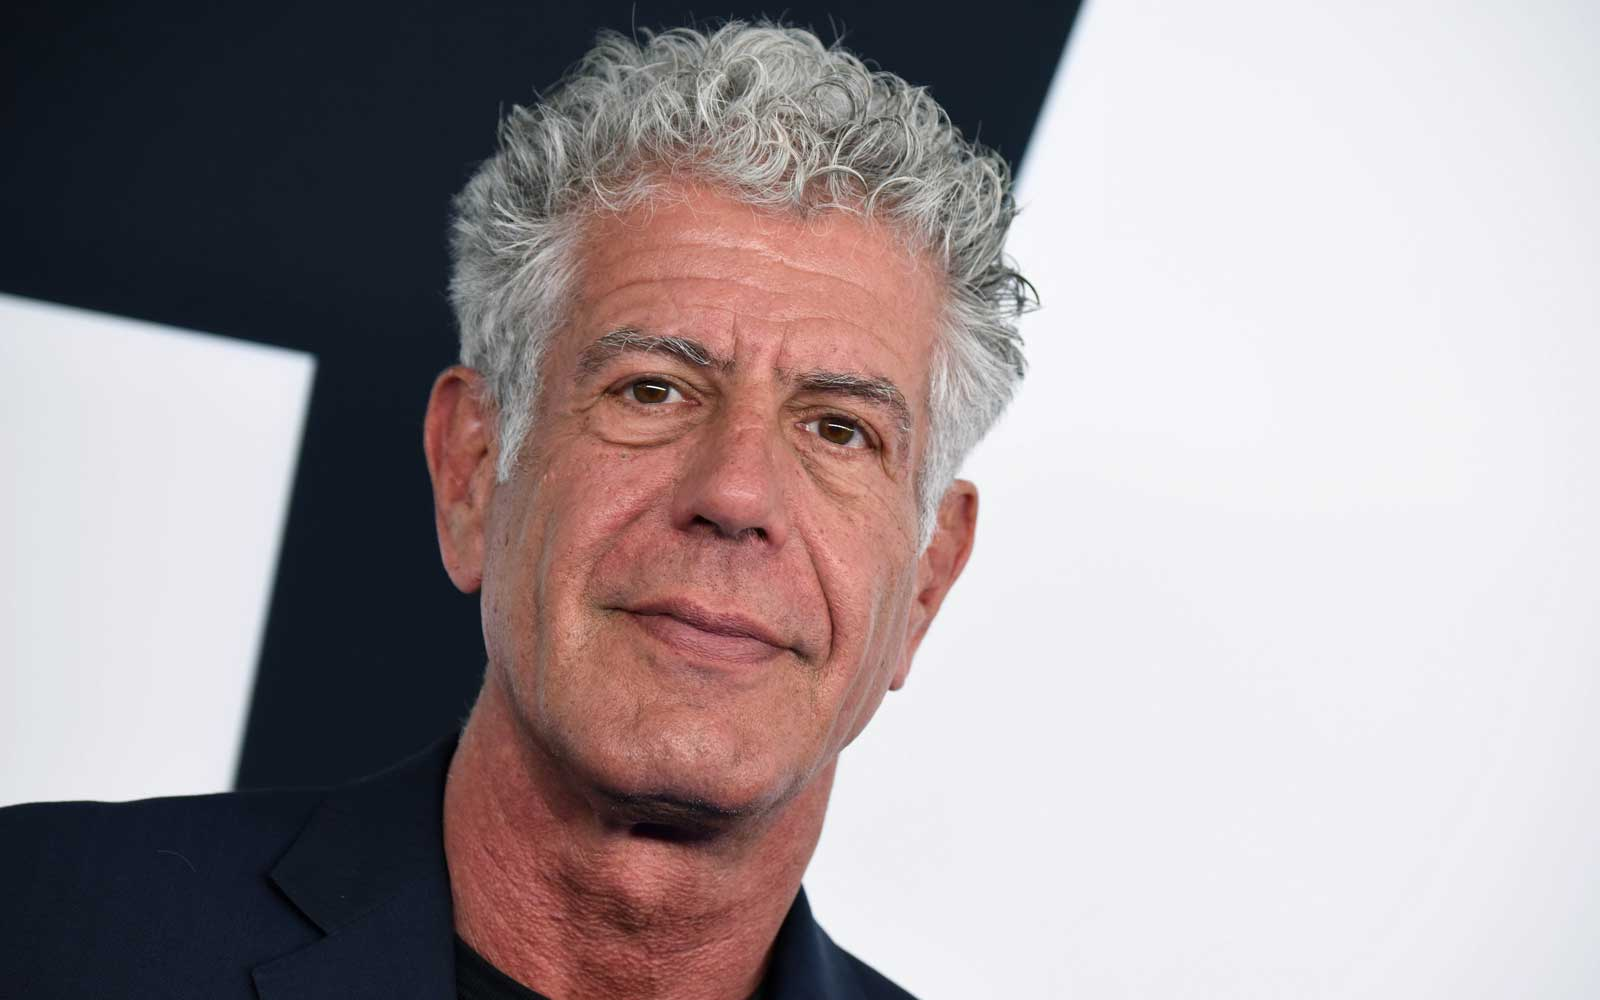 Scenes From Anthony Bourdain's Last Completed Episode of 'Parts Unknown' Will Give You Chills